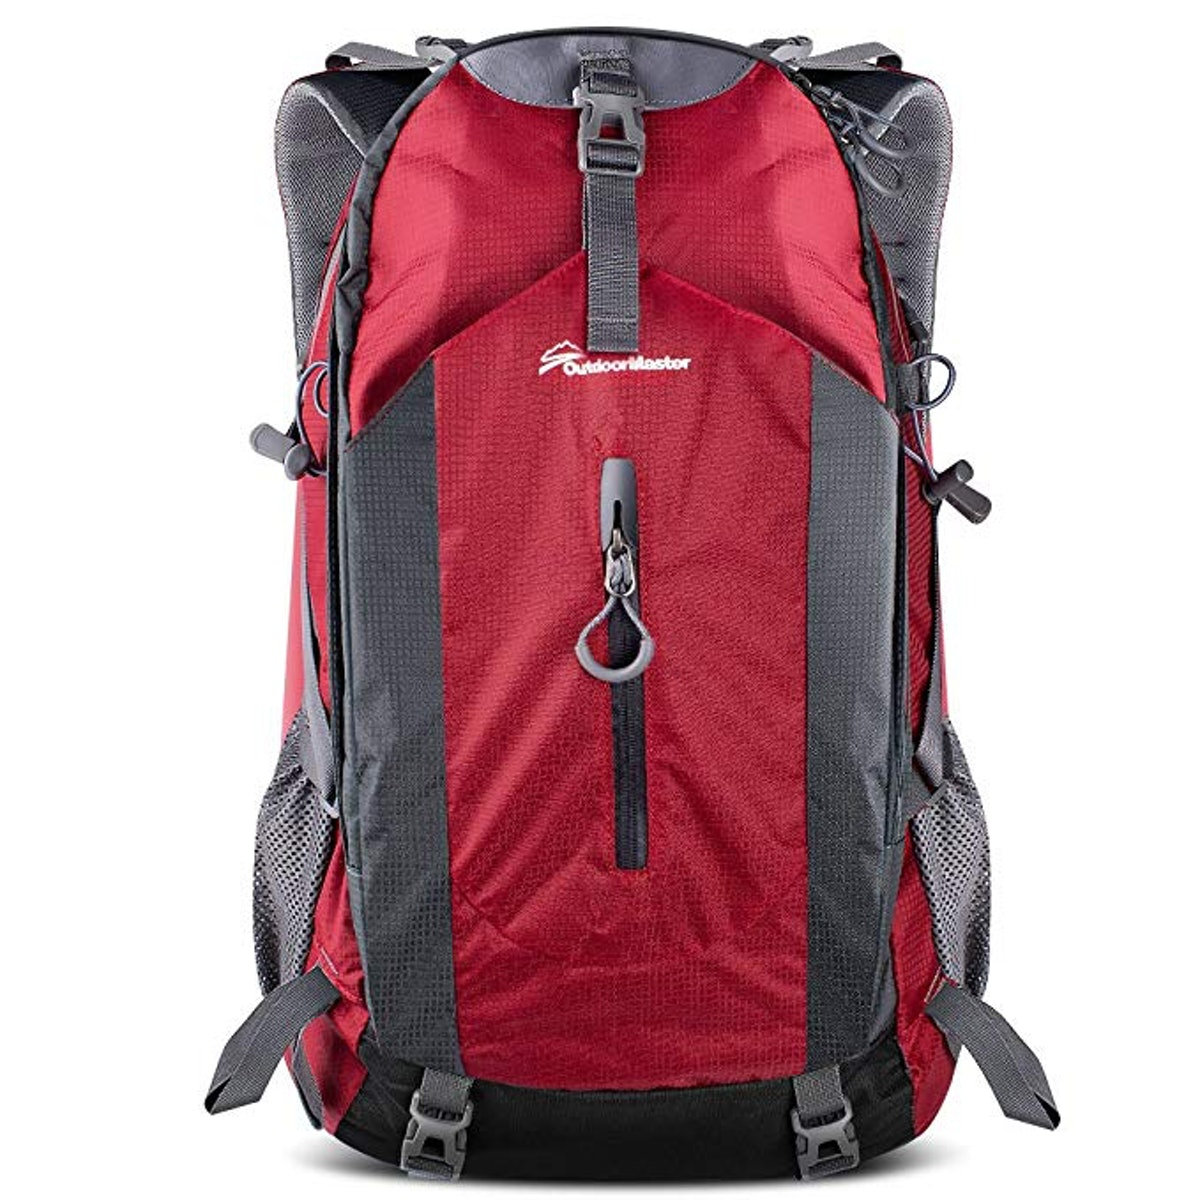 Outdoor Master Hiking Backpack With Waterproof Rain Cover